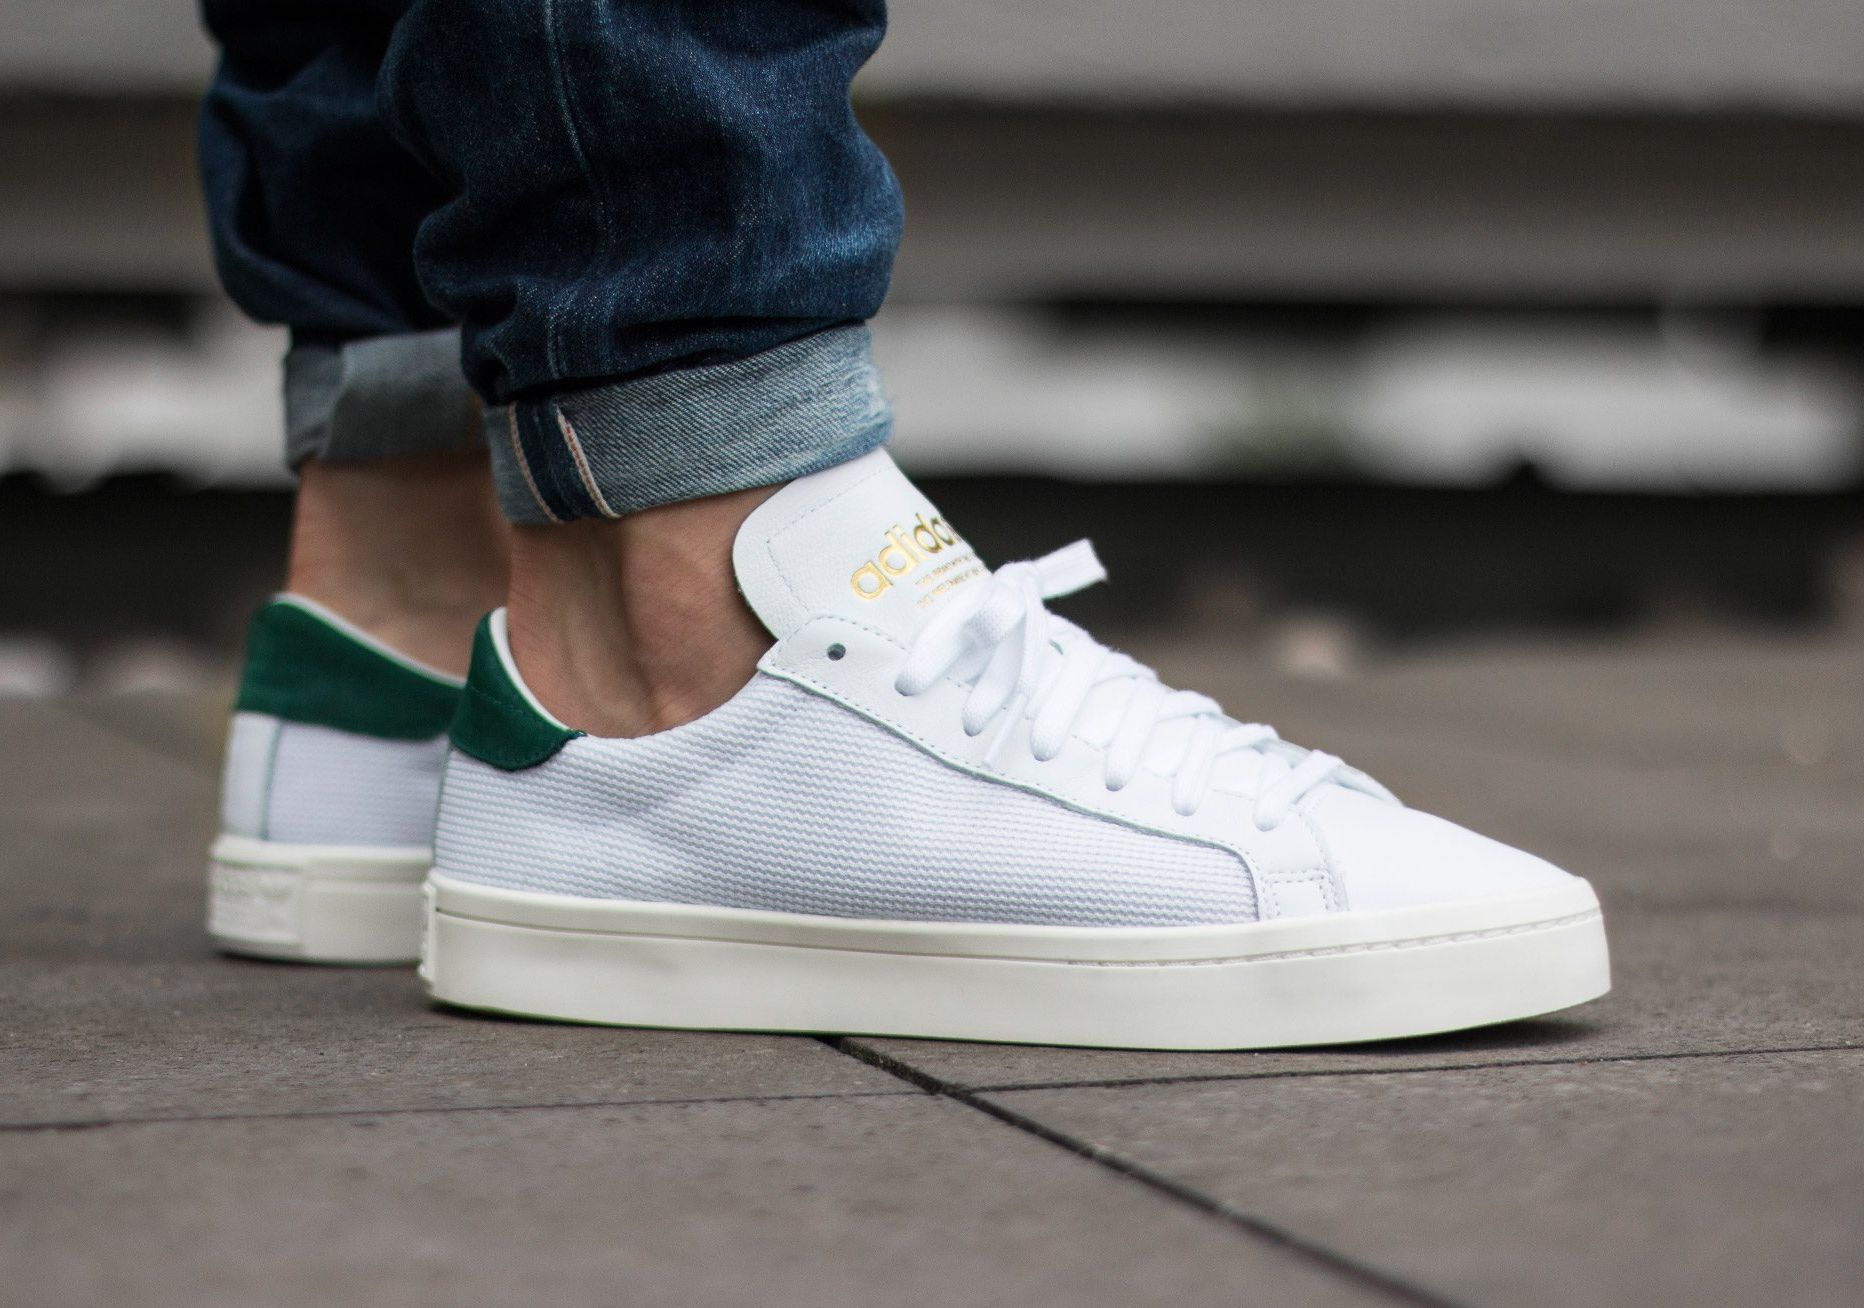 Adidas Court Vantage Vintage White Gold Green | Chaussure